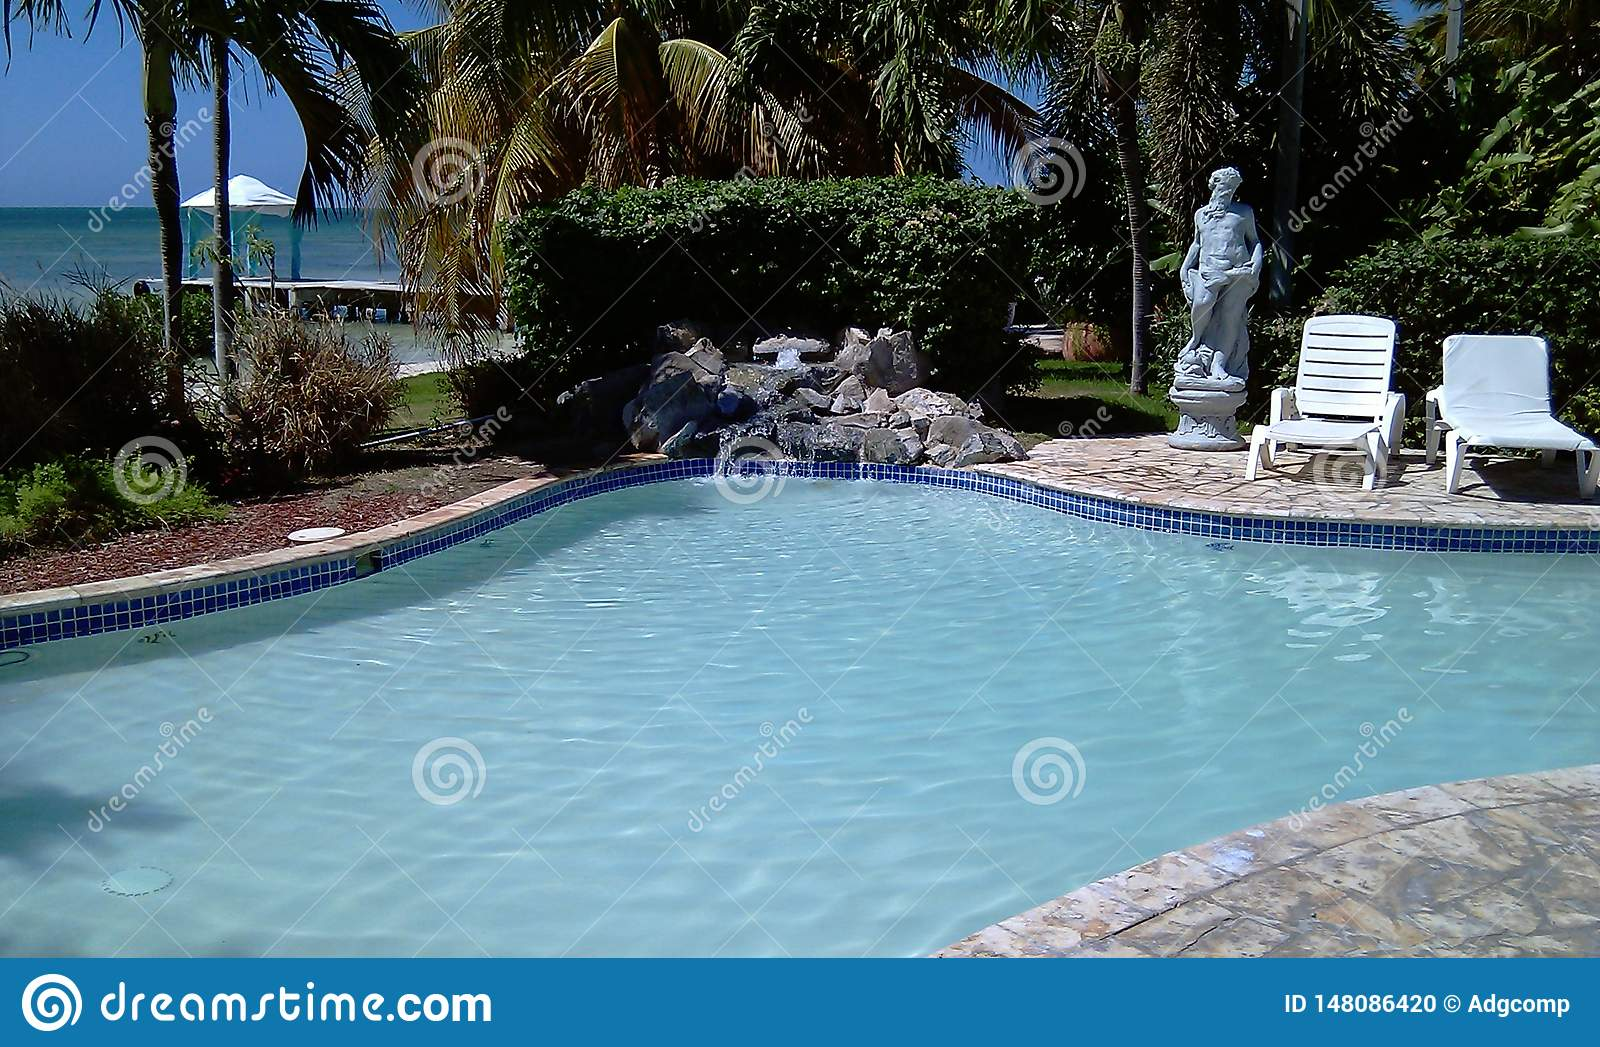 A small pool and massage areas